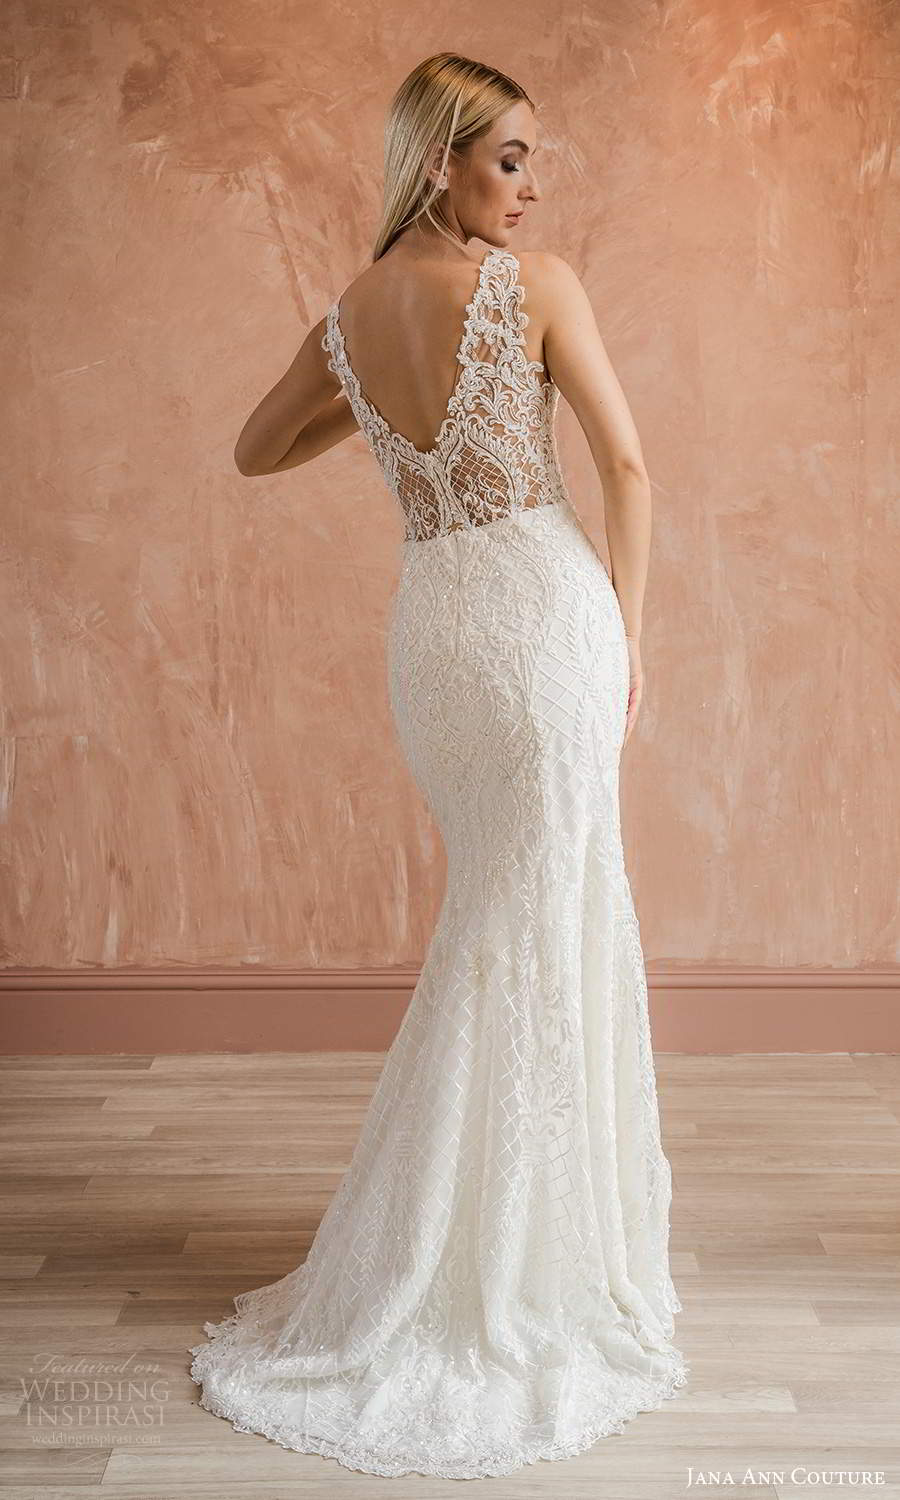 jana ann couture 2021 bridal sleeveless straps sweetheart neckline fully embellished sheath wedding dress chapel train v back (2) bv